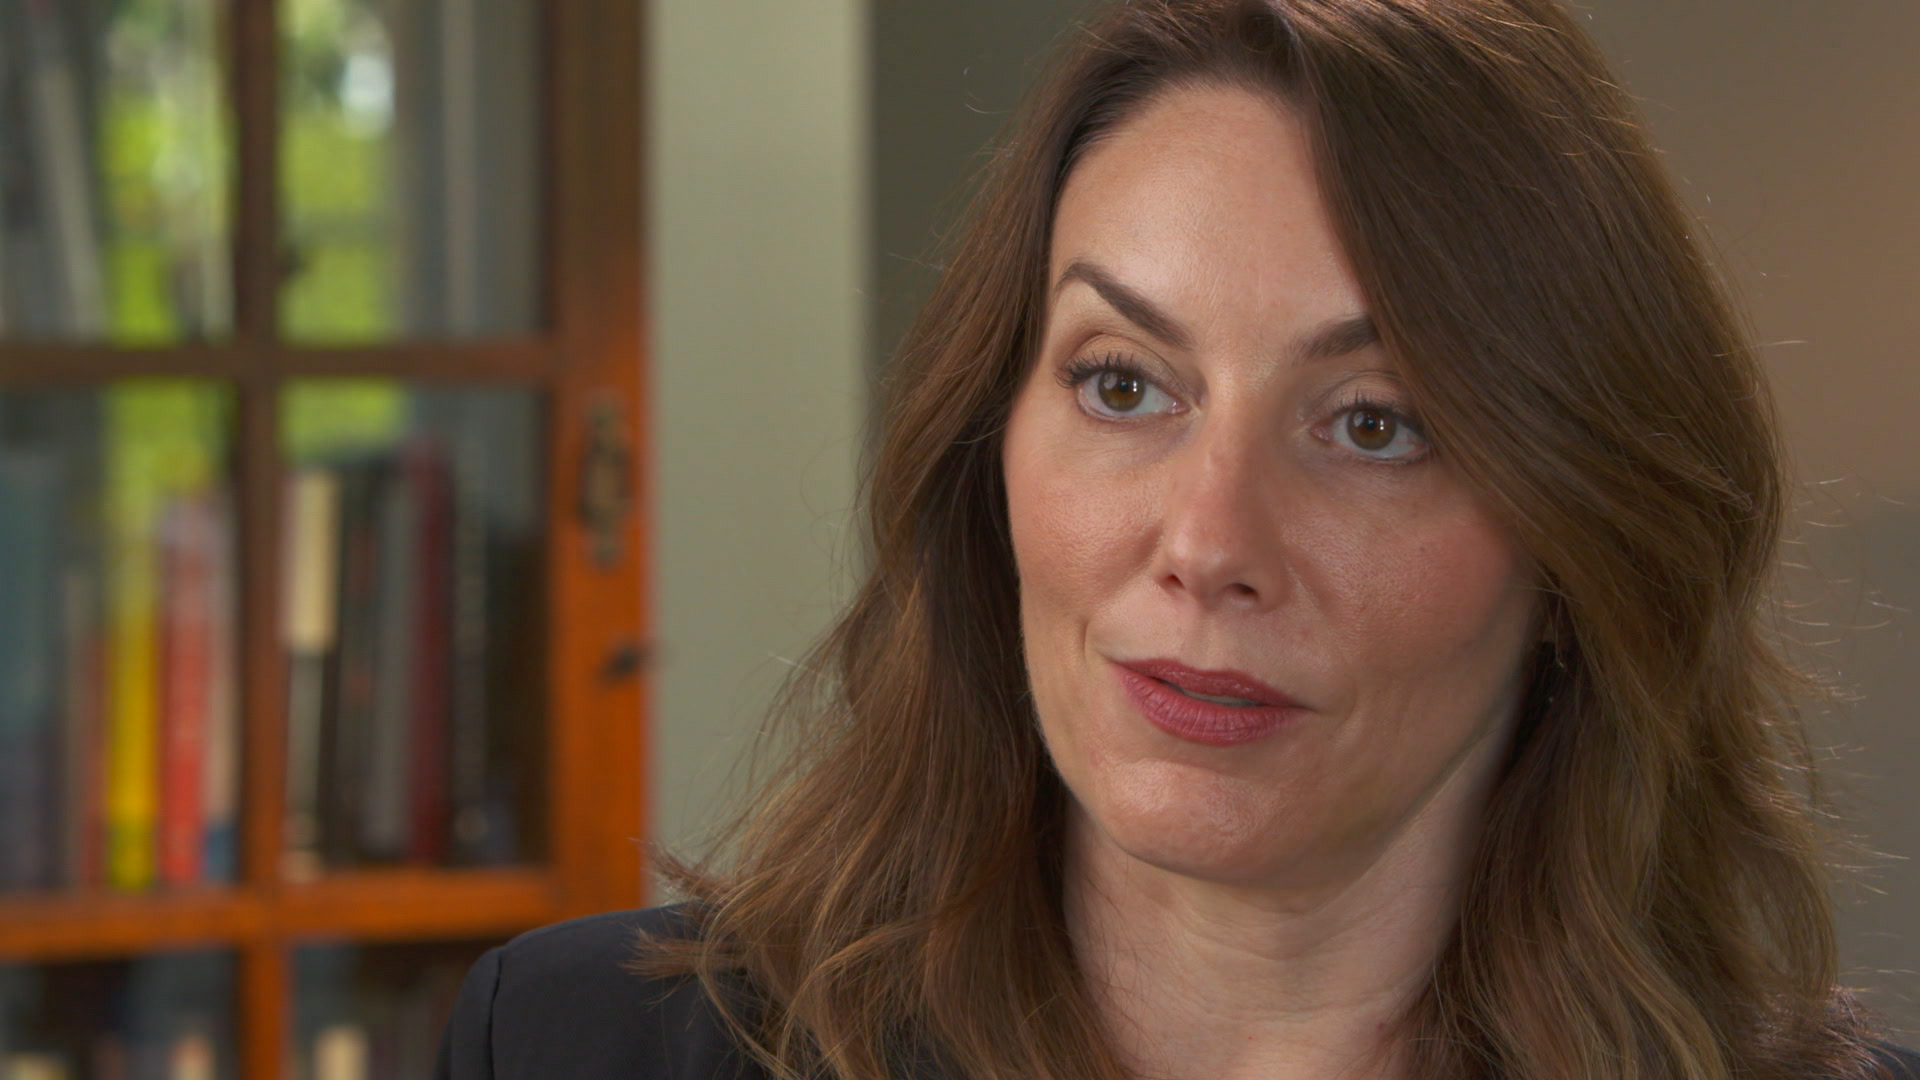 NBC Dateline -  Angelina tells her version of events from death row  Reporter Gina Piccalo on her one-on-one with Angelina on death row.